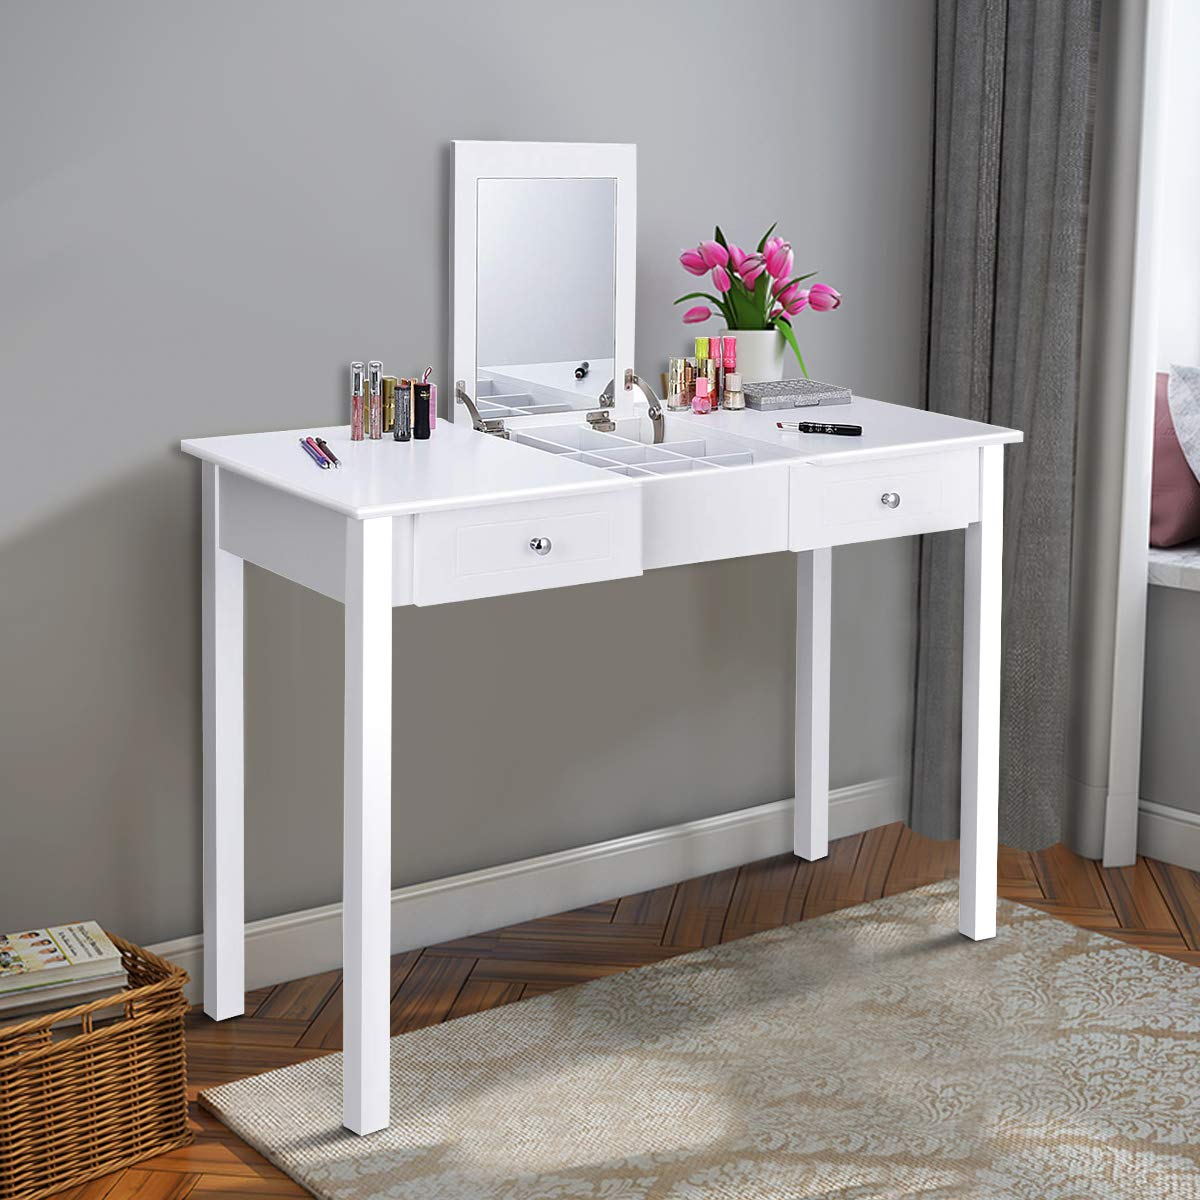 Giantex Vanity Table with Flip Top Mirror, Makeup Dressing Table Writing Desk with 2 Drawers and Removable Organizer 9 Compartments, Bedroom Vanity Table for Girls Women, Easy Assembly, White by Giantex